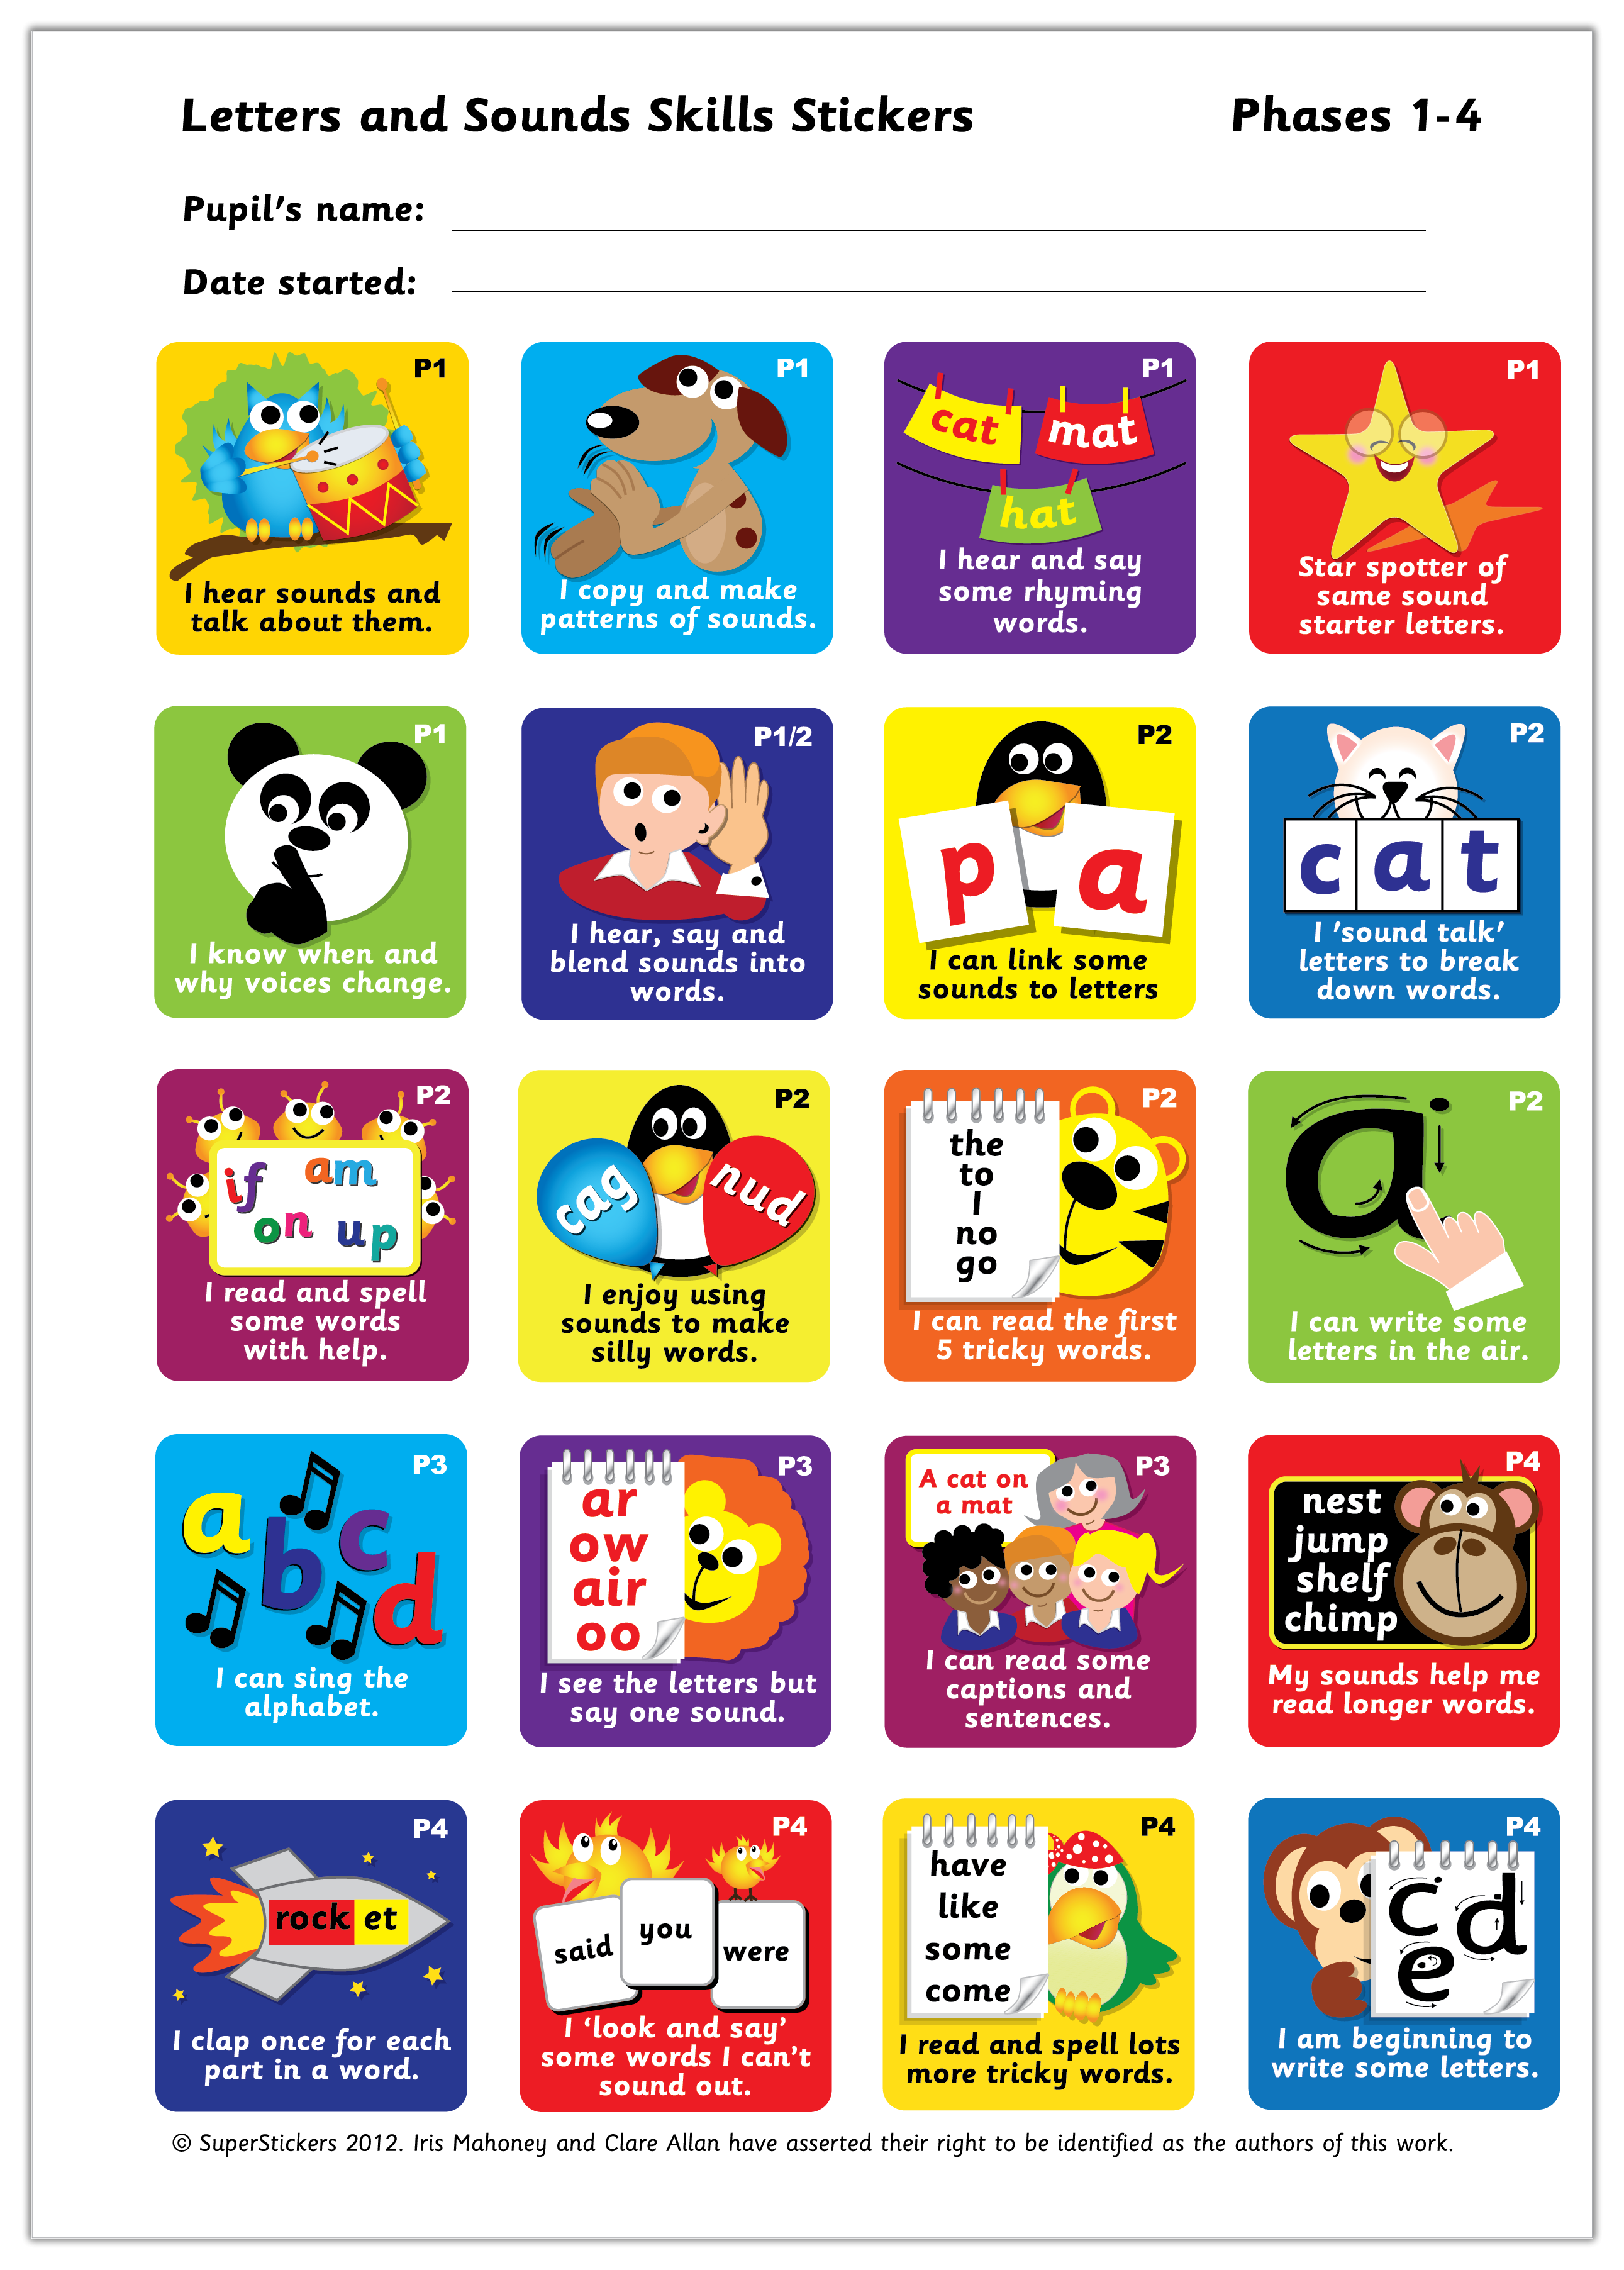 Sticker: Letters and Sounds Skills - Phases 1-4